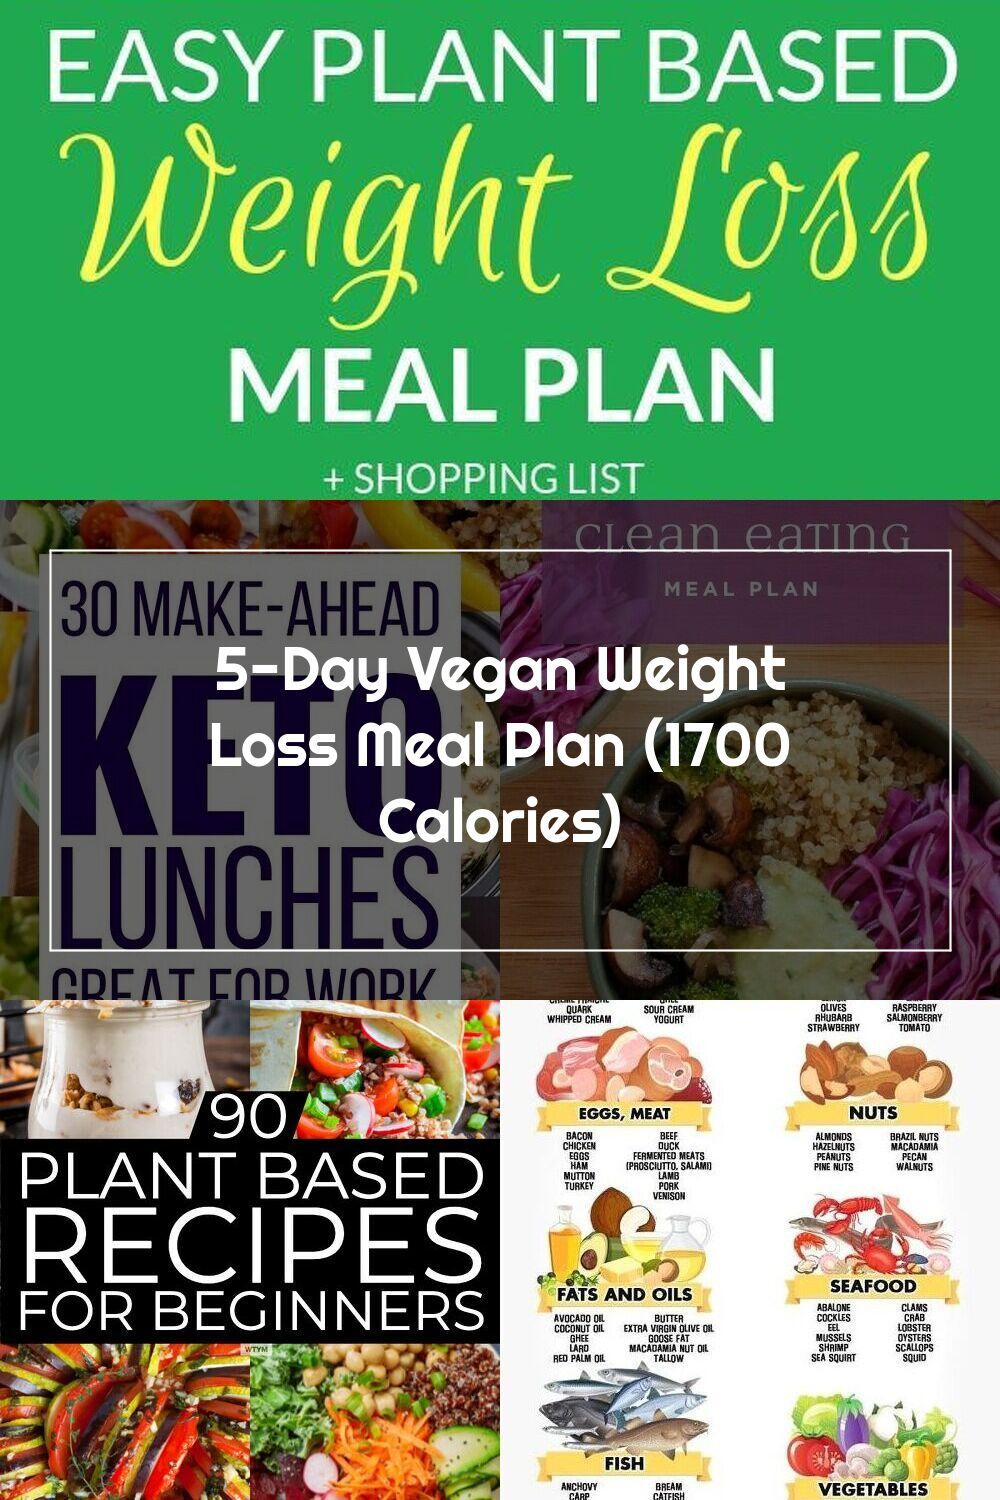 Healthy 5 Day Weight Loss Meal Plan For Clean Eating Vegan And Plant Based Diet This Is A Great Meal Plan For Beginners Or To J